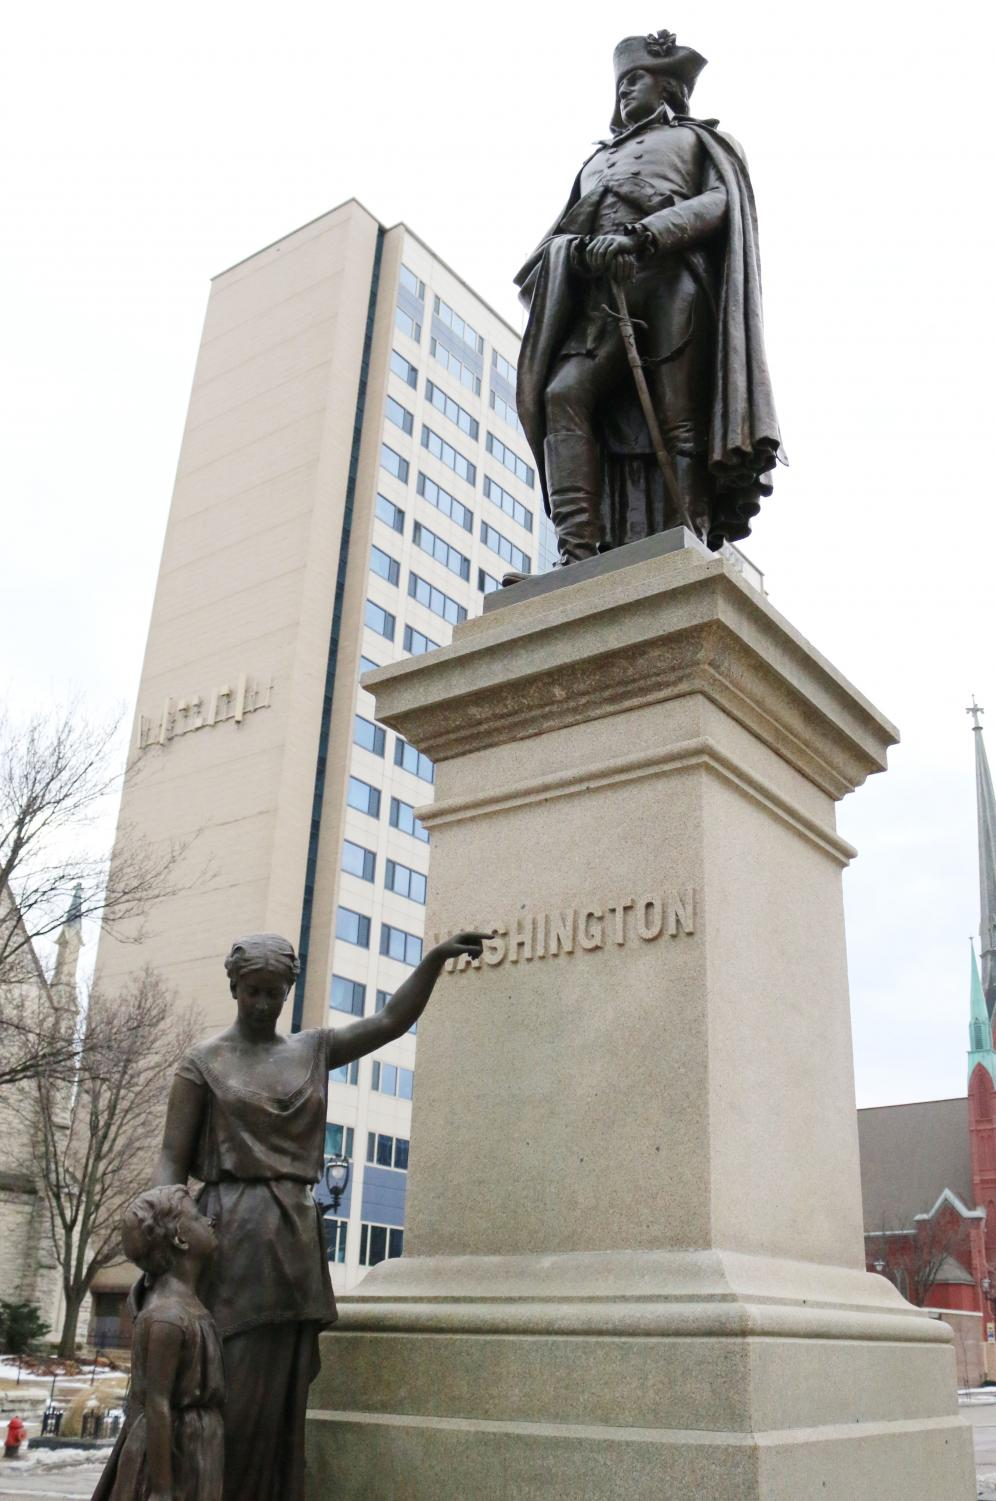 After undergoing refurbishment, the George Washington statue returned to its home in front of Straz Tower Jan. 11.